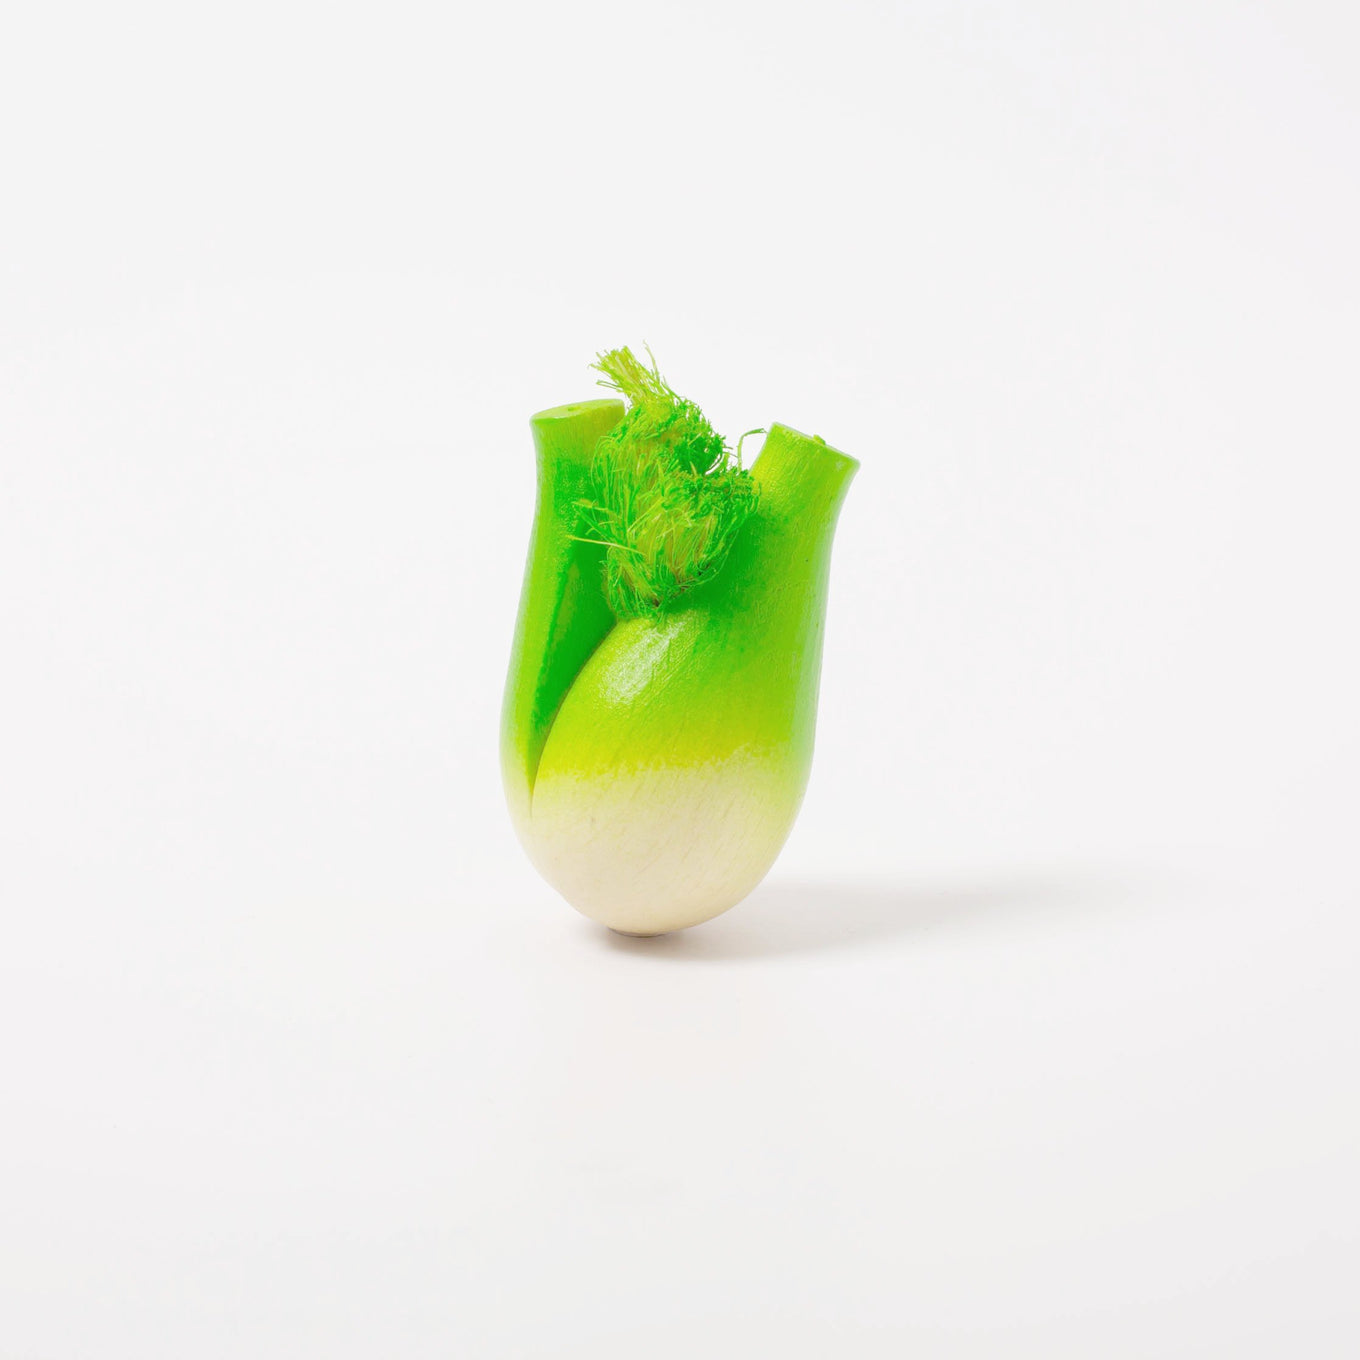 Wooden Vegetable | Fennel Bulb